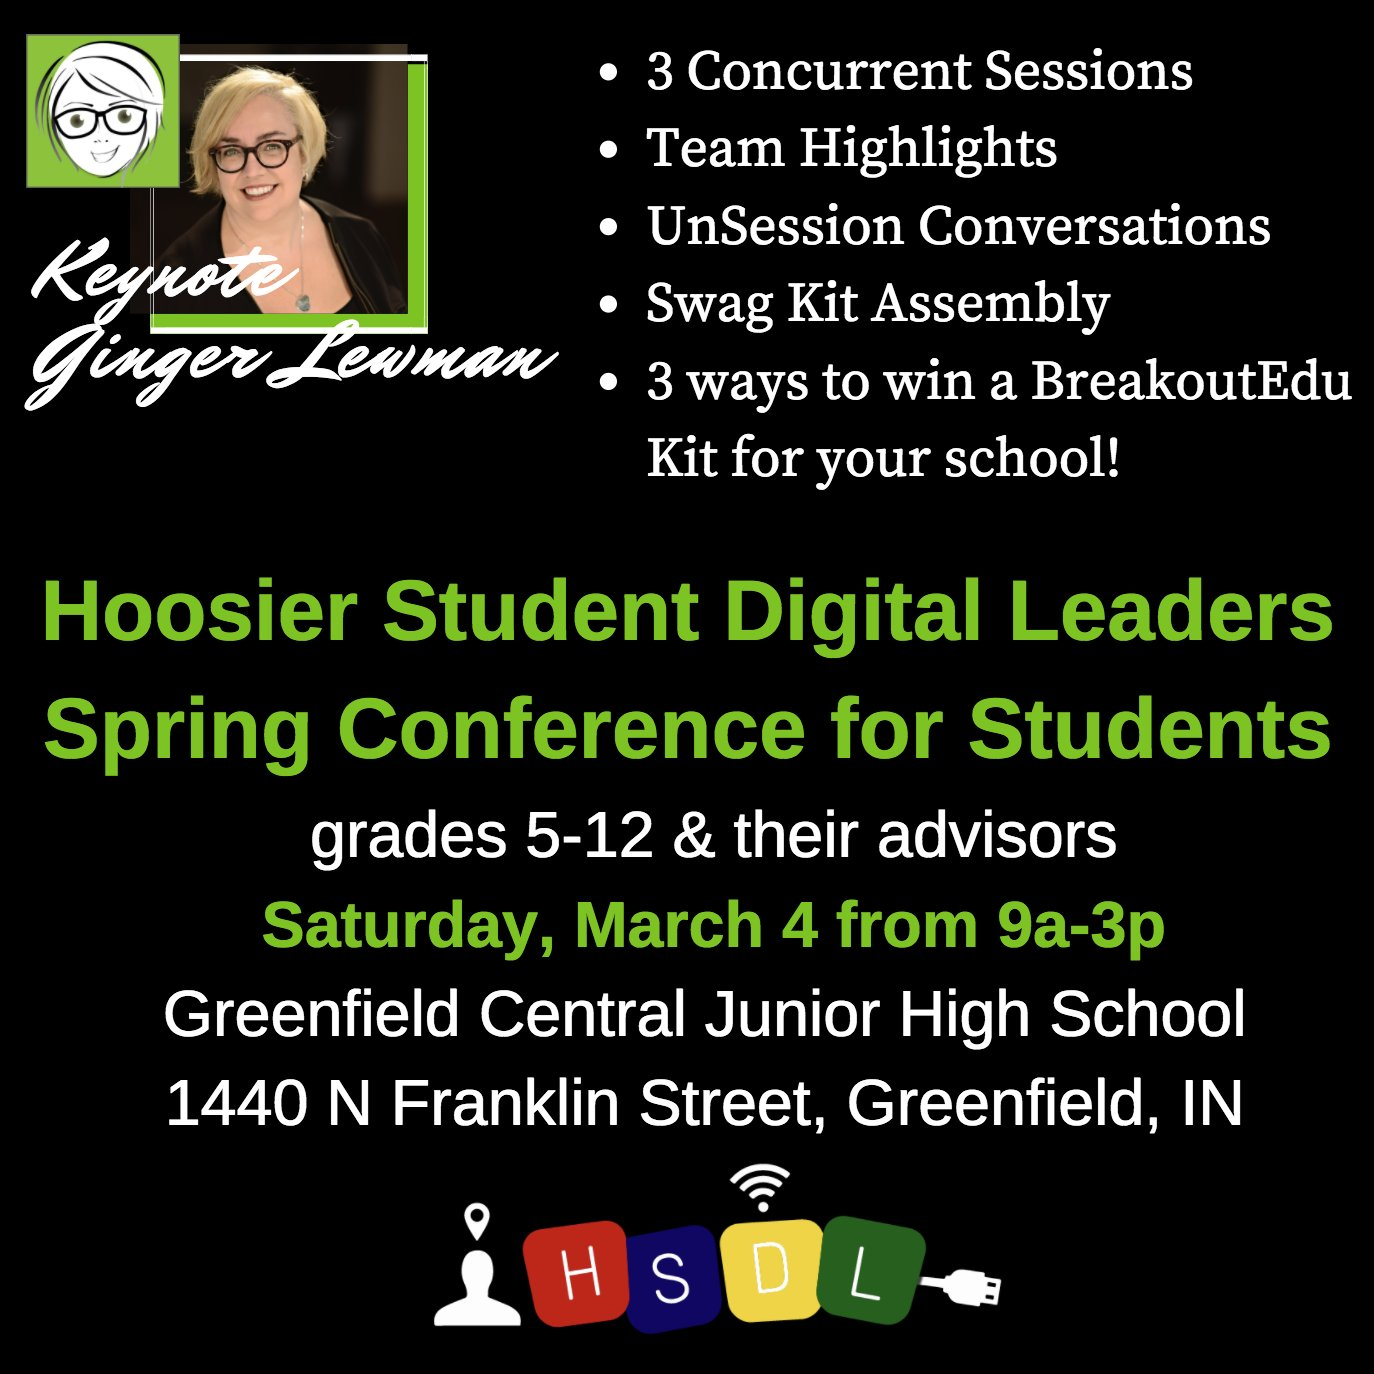 Thumbnail for Hoosier Student Digital Leaders Spring Conference 2017